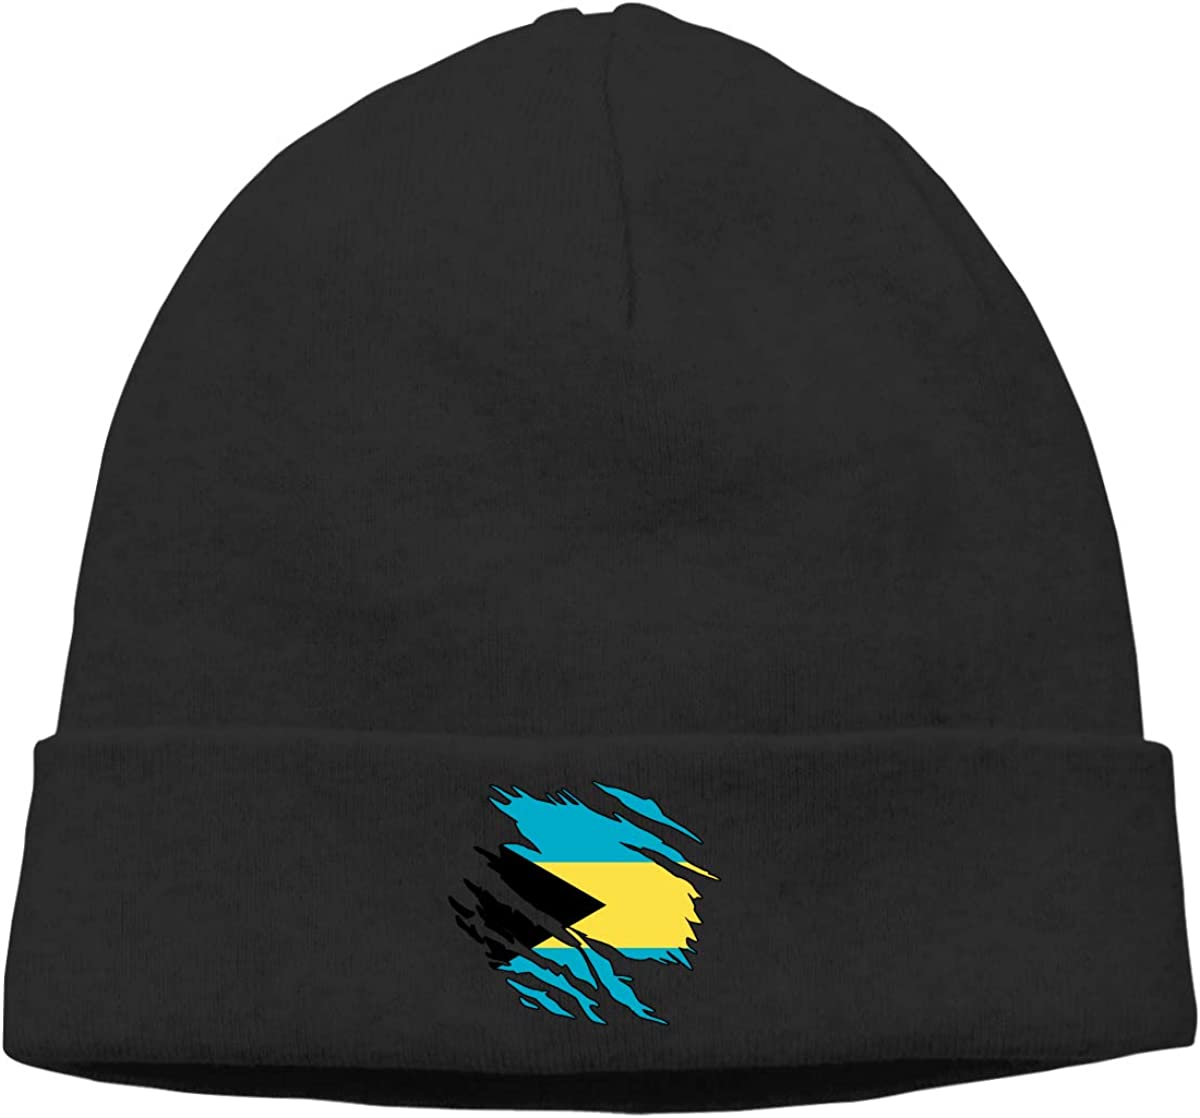 Stretchy /& Soft Winter Cap Thin Ripped Bahamas Flag Unisex Solid Color Beanie Hat